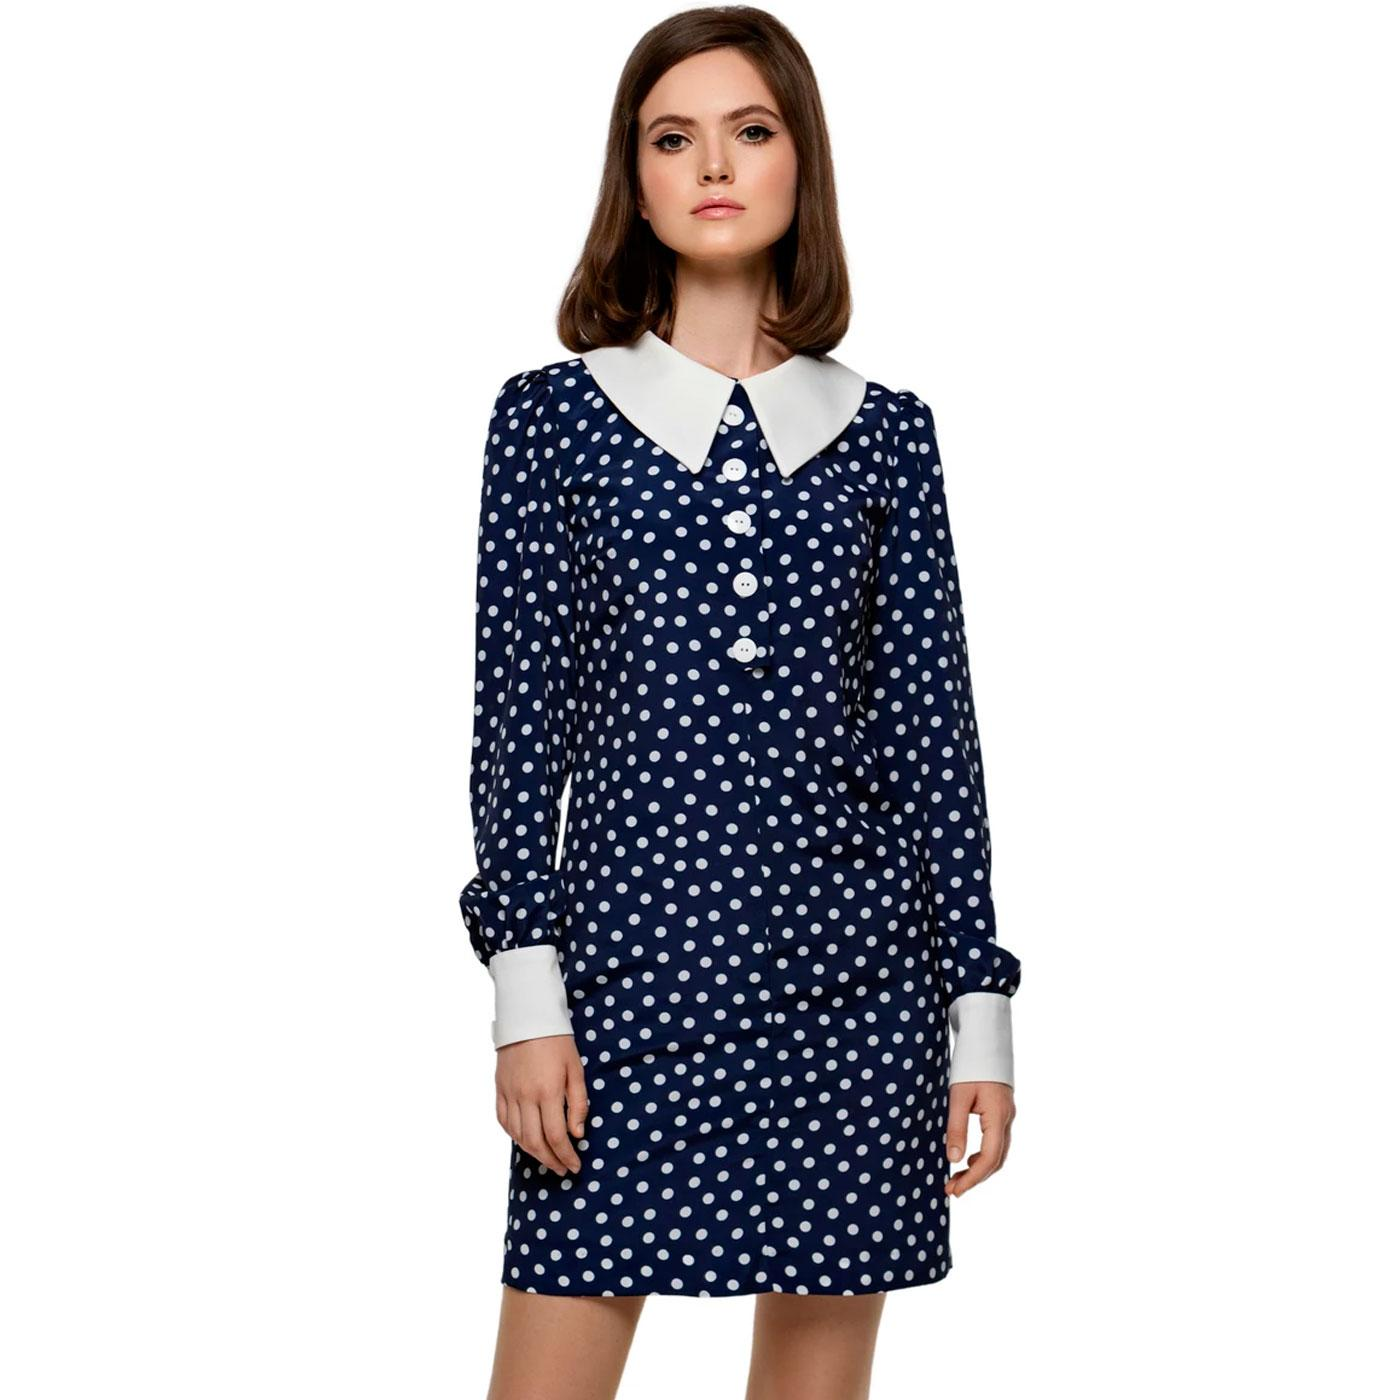 MARMALADE Retro Polka Dot Shift Dress - Navy/White